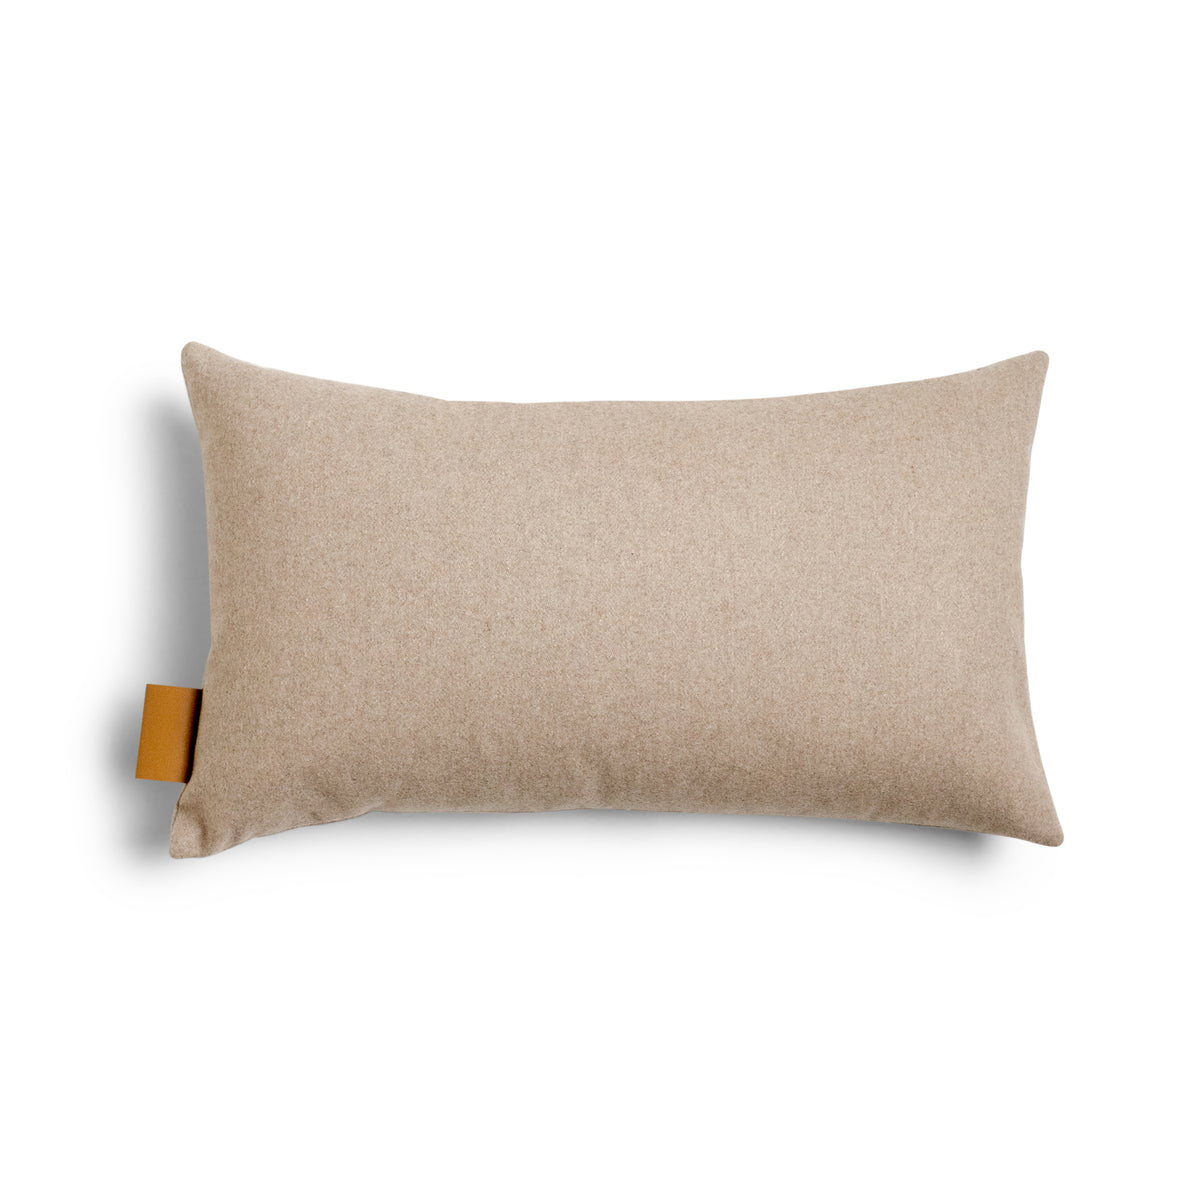 Frankie Cushion Lumbar - Oatmeal